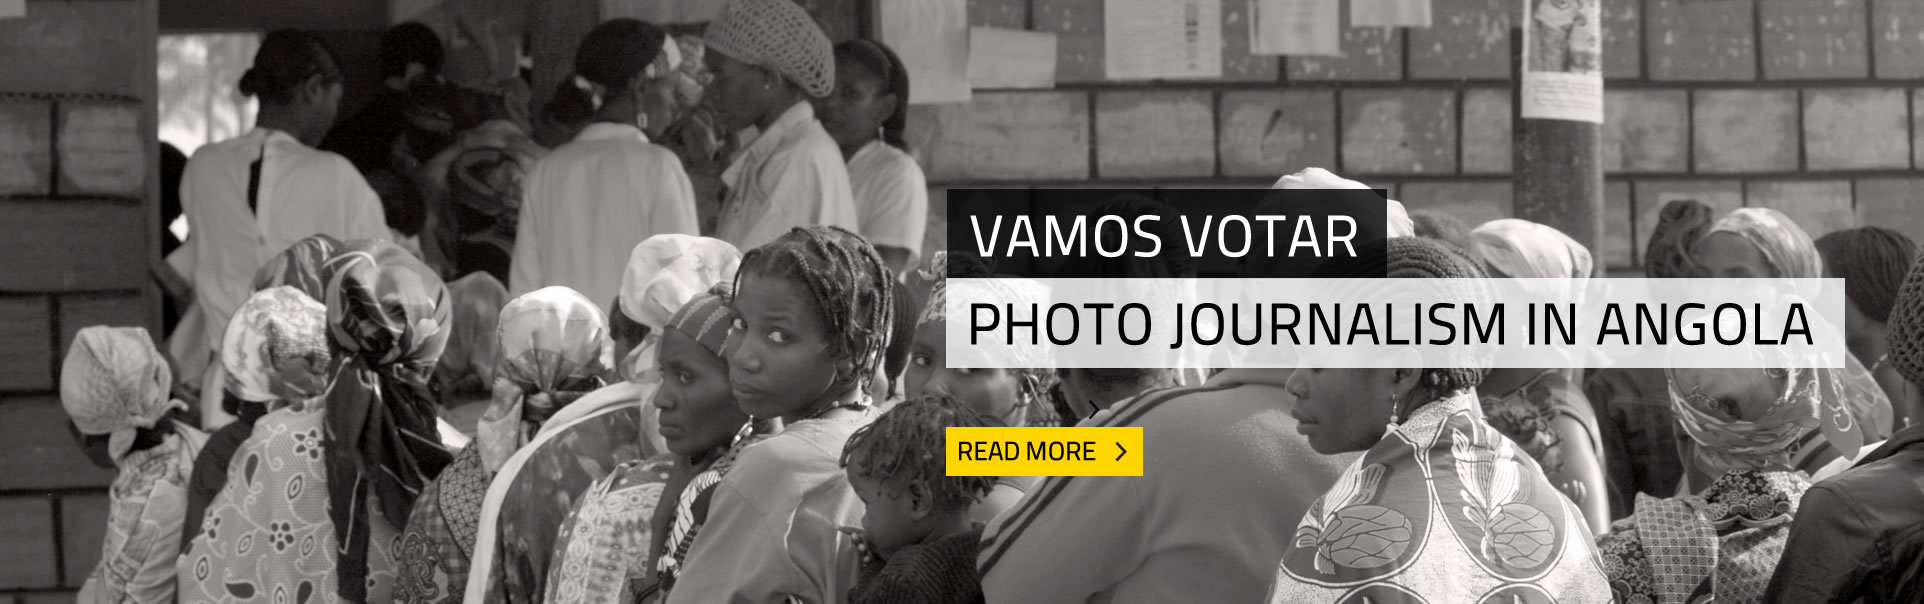 Vamos Votar-Construction of the Angolan democracy in photos